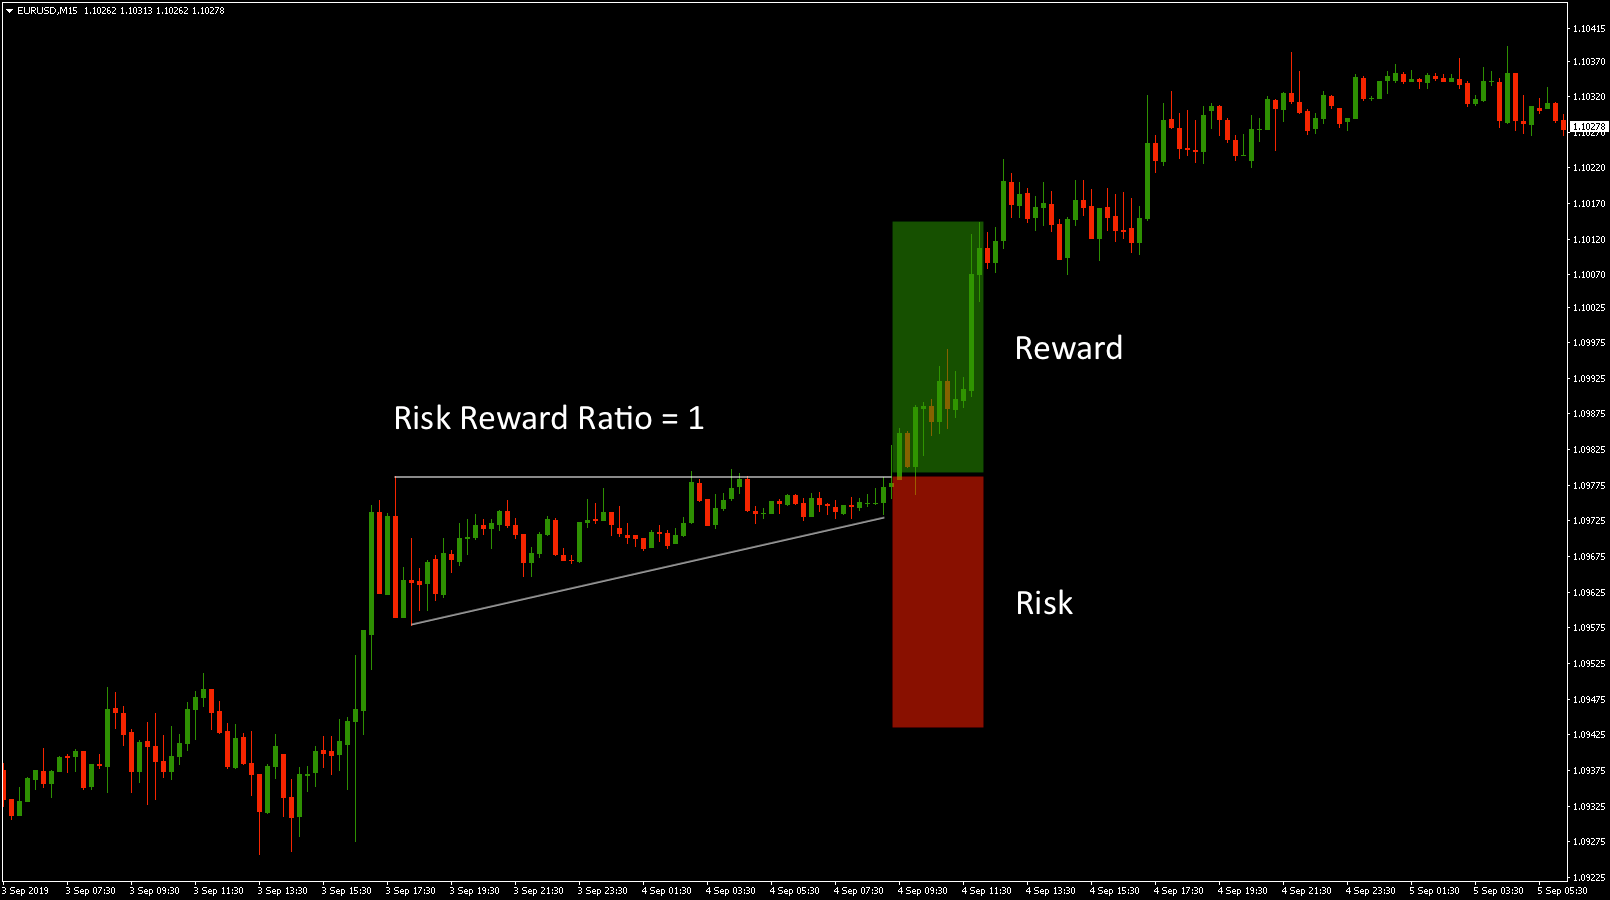 Risk/Reward Ratio RRR Forex Trading Strategy Example